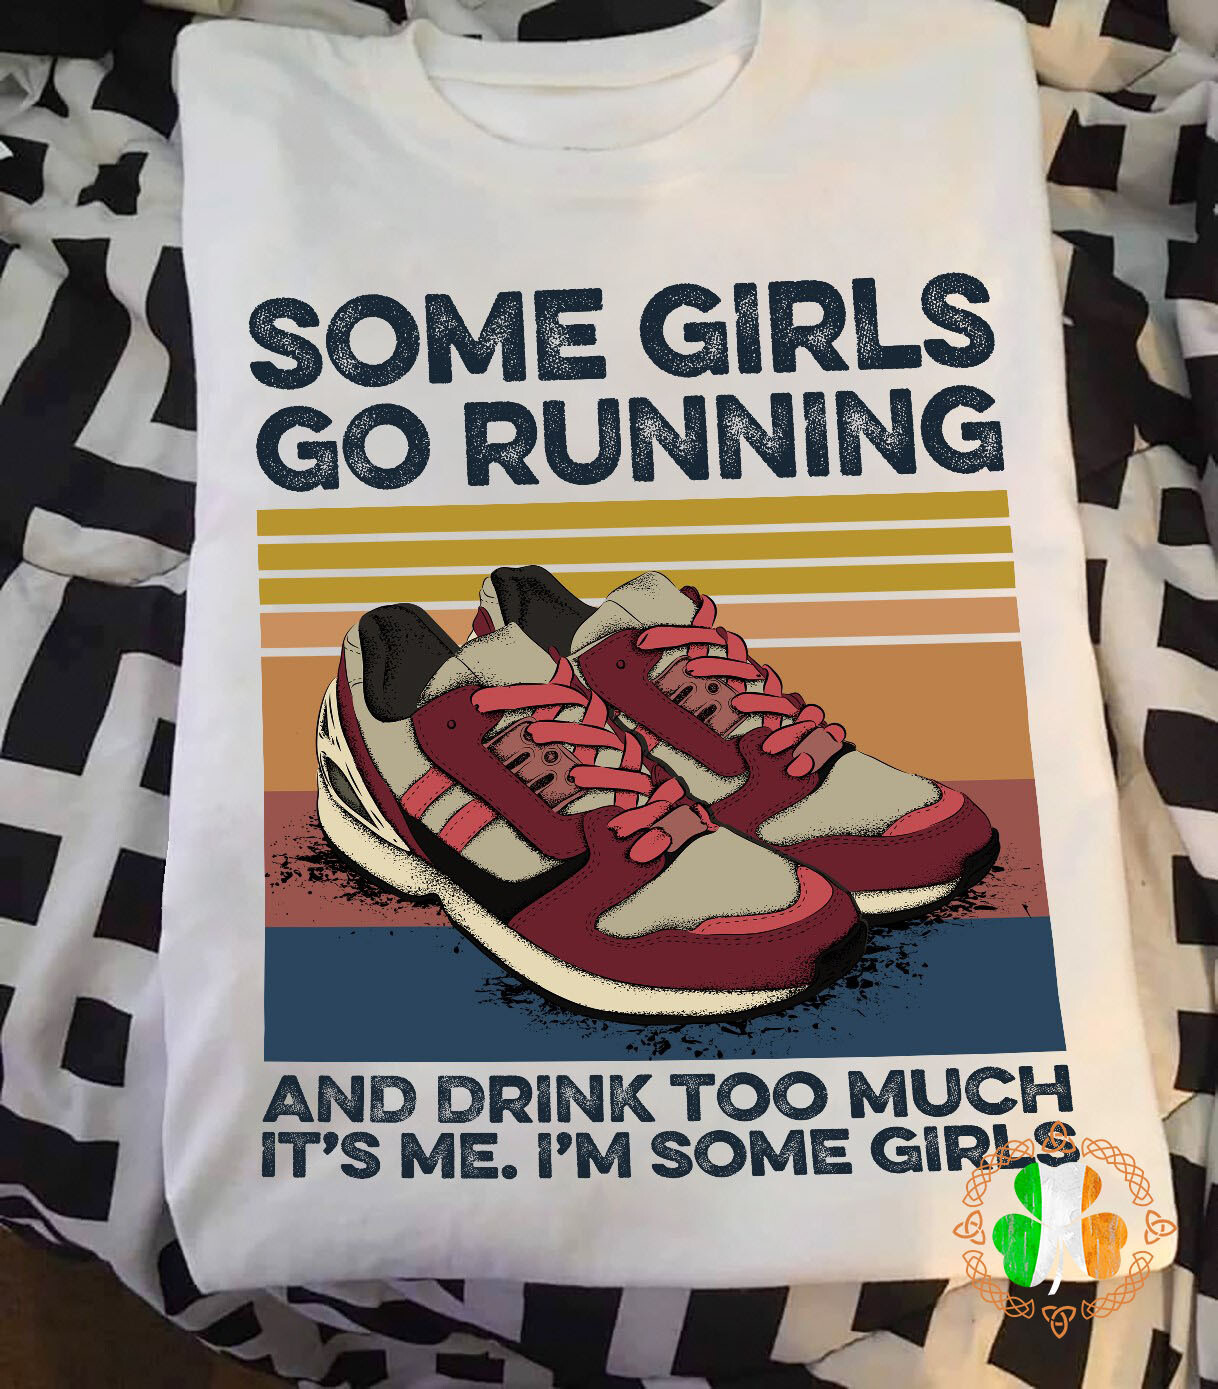 Some girls go running and drink too much it's me I'm some girls vintage shirt